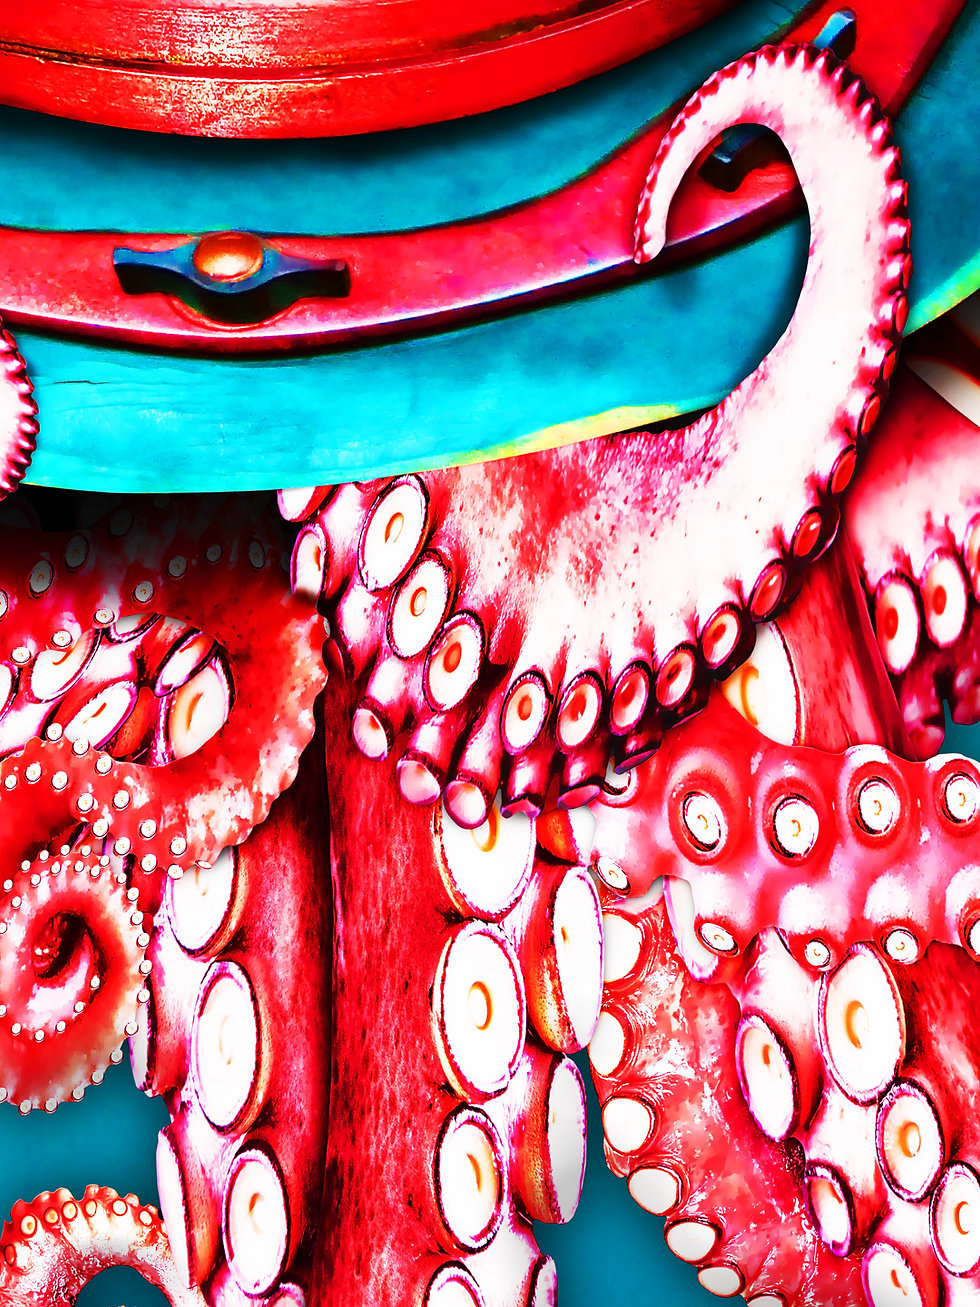 Octopus_artwork_4.jpg